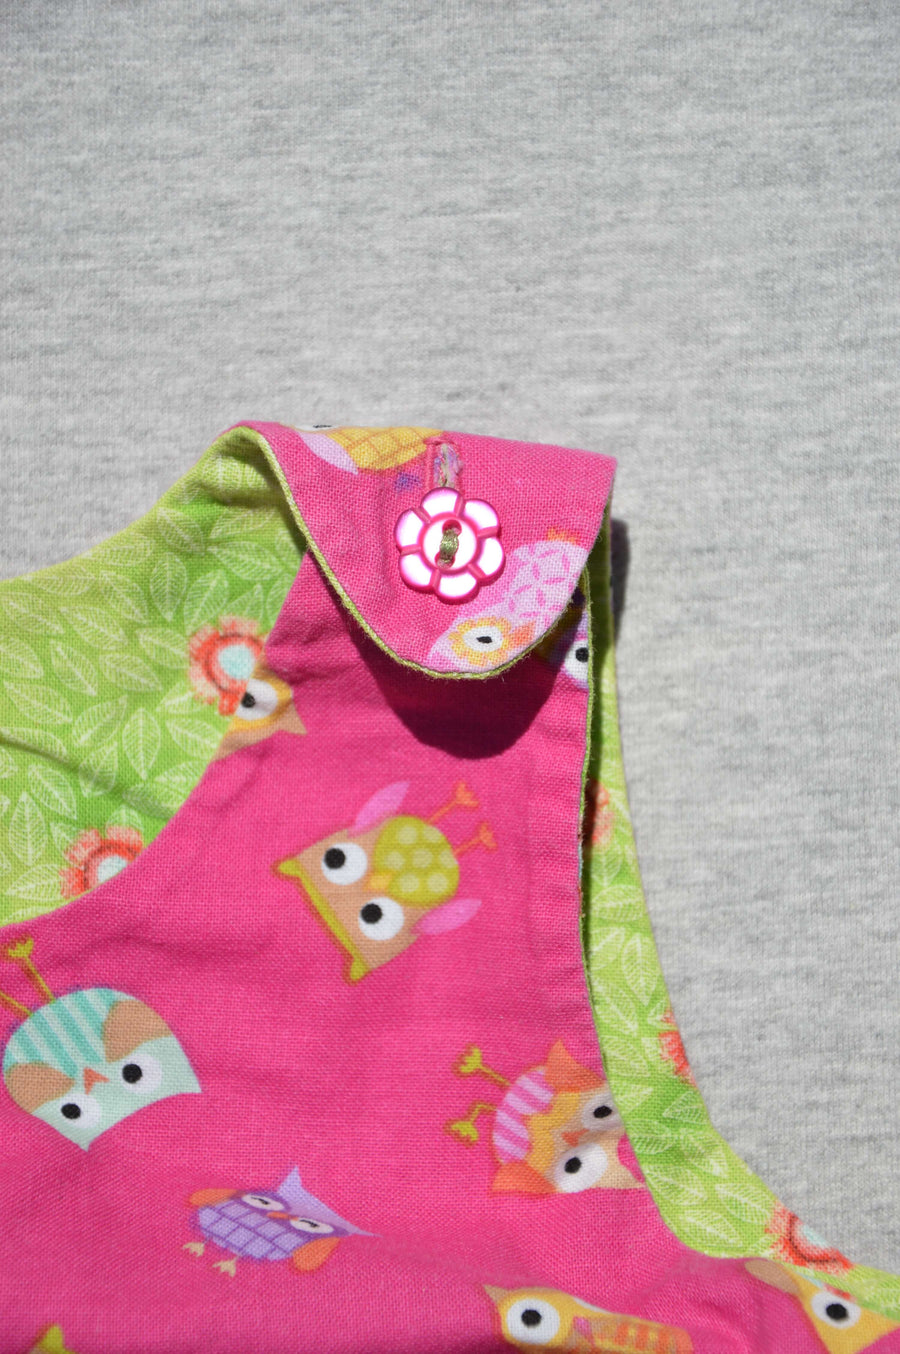 Professionally handmade pink & green reversible dress, size 3